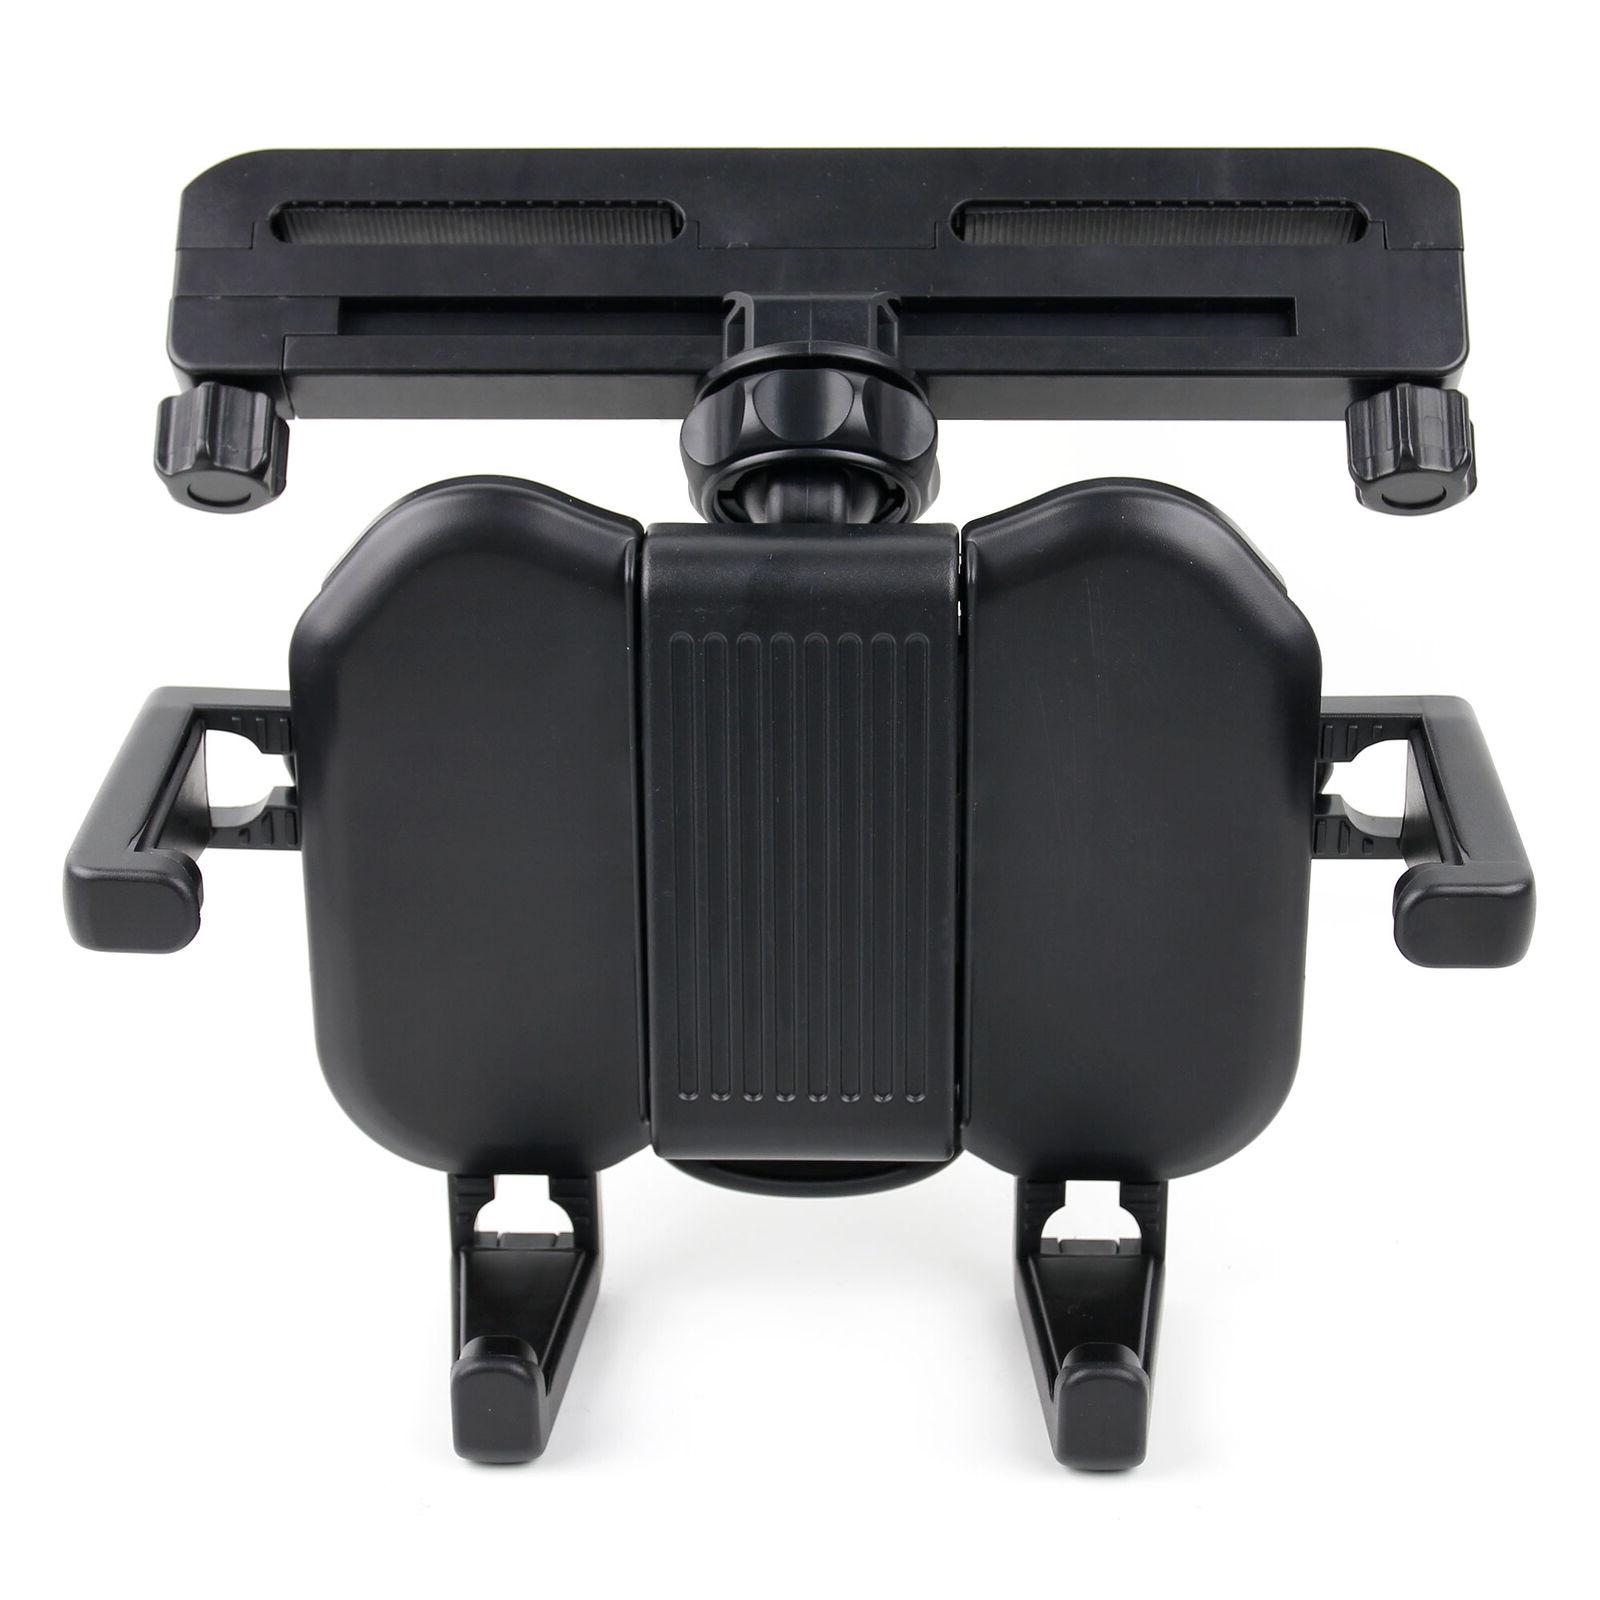 In-Car For Dual DVD-P 906 Portable DVD Player